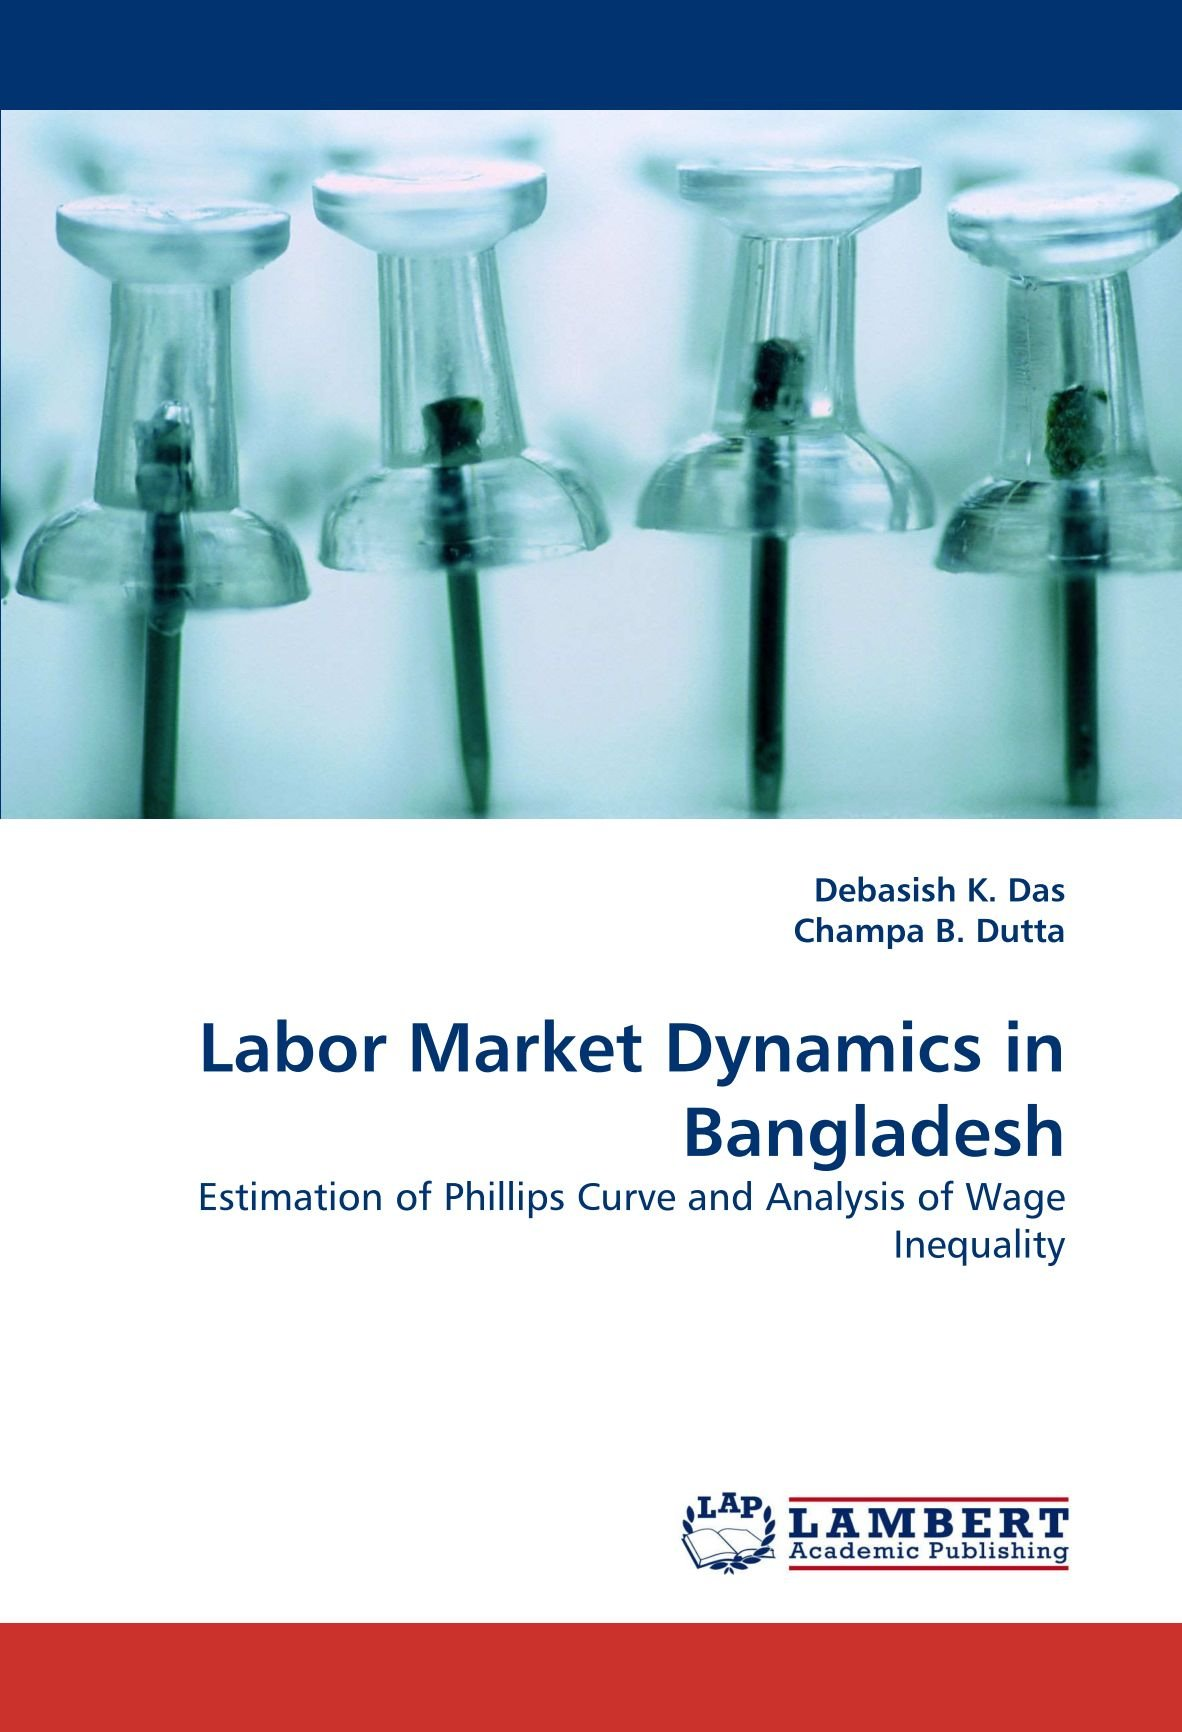 Labor Market Dynamics in Bangladesh: Estimation of Phillips